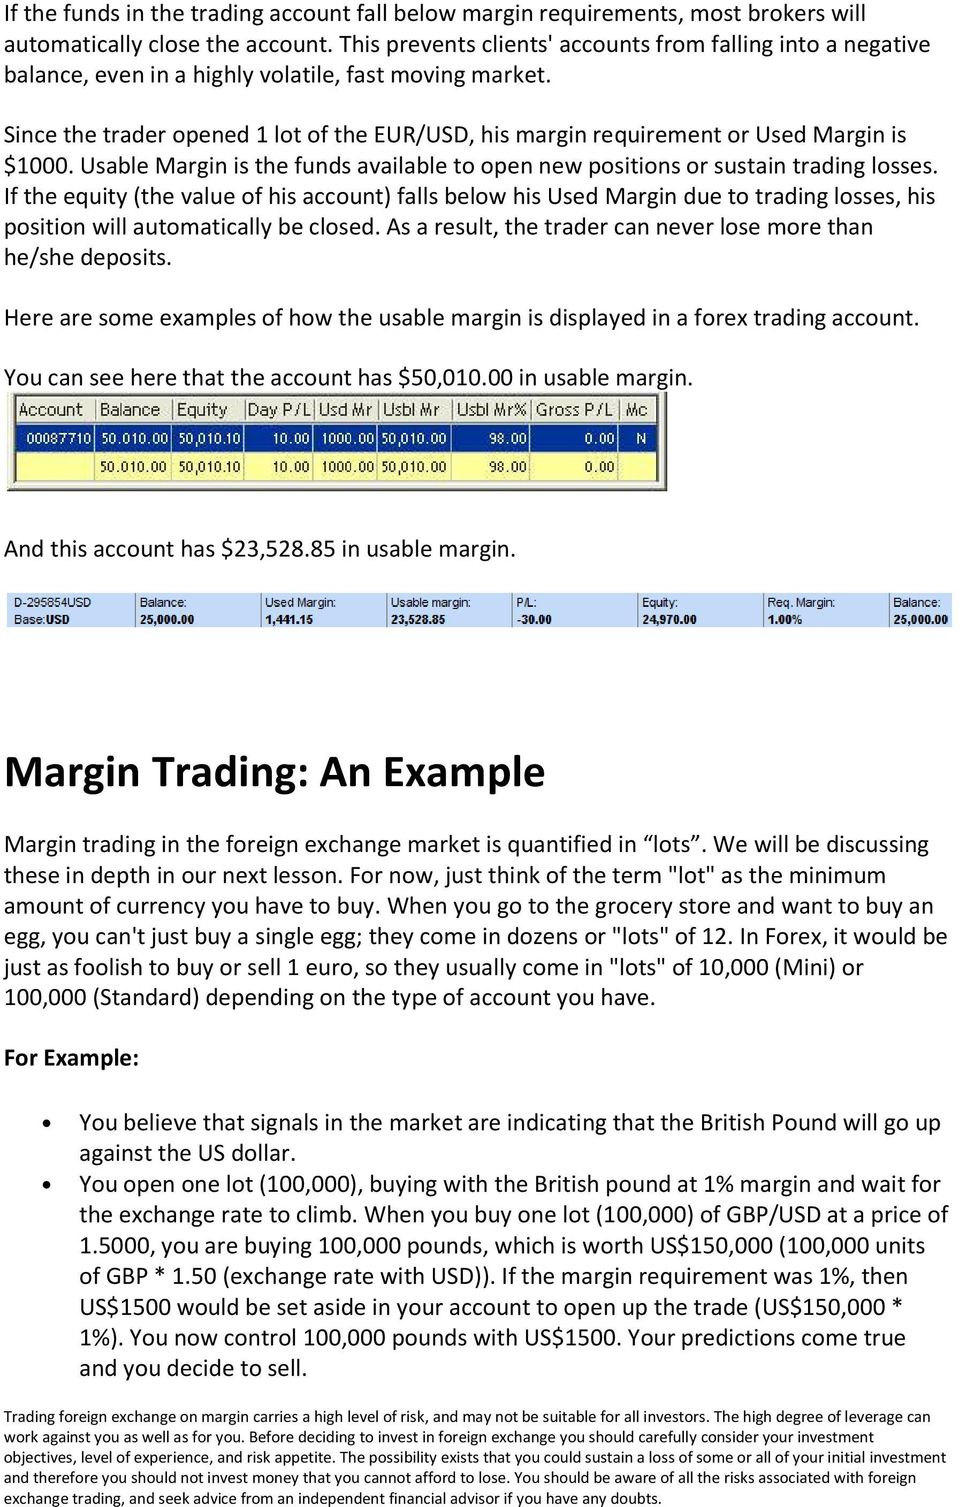 Since the trader opened 1 lot of the EUR/USD, his margin requirement or Used Margin is $1000. Usable Margin is the funds available to open new positions or sustain trading losses.